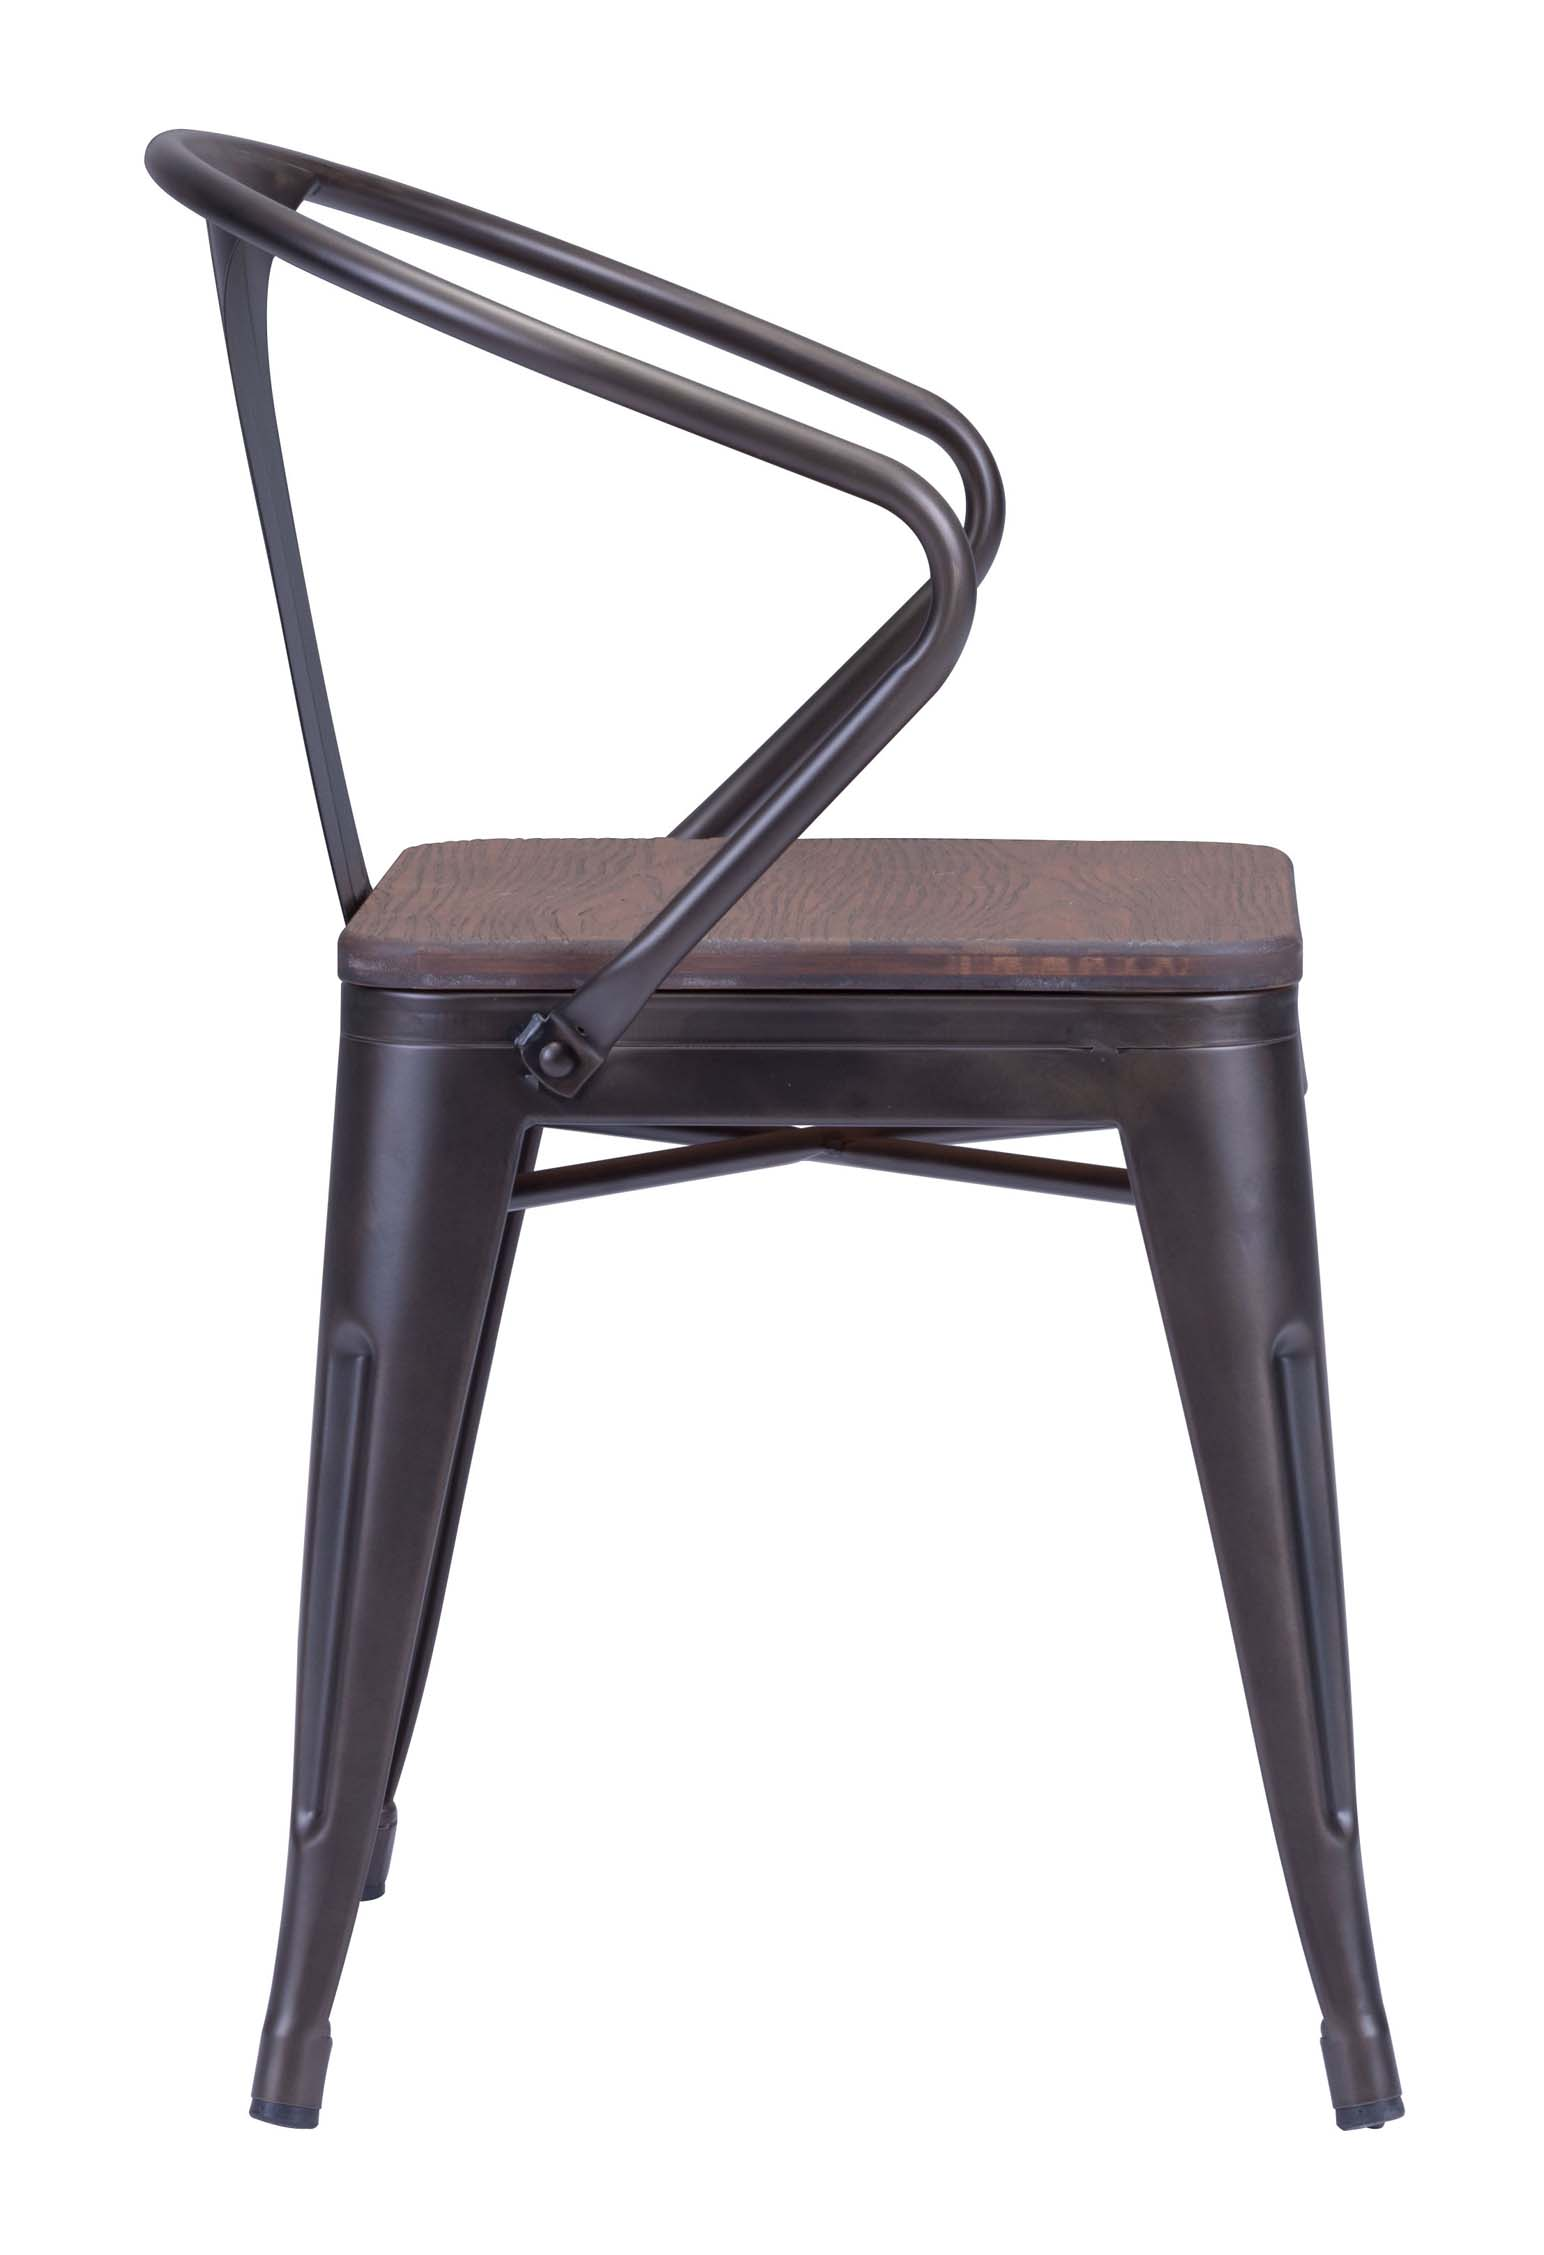 Rustic Wood Chairs Zuo Helix Dining Chair With Wood Seat Gunmetal Chairs